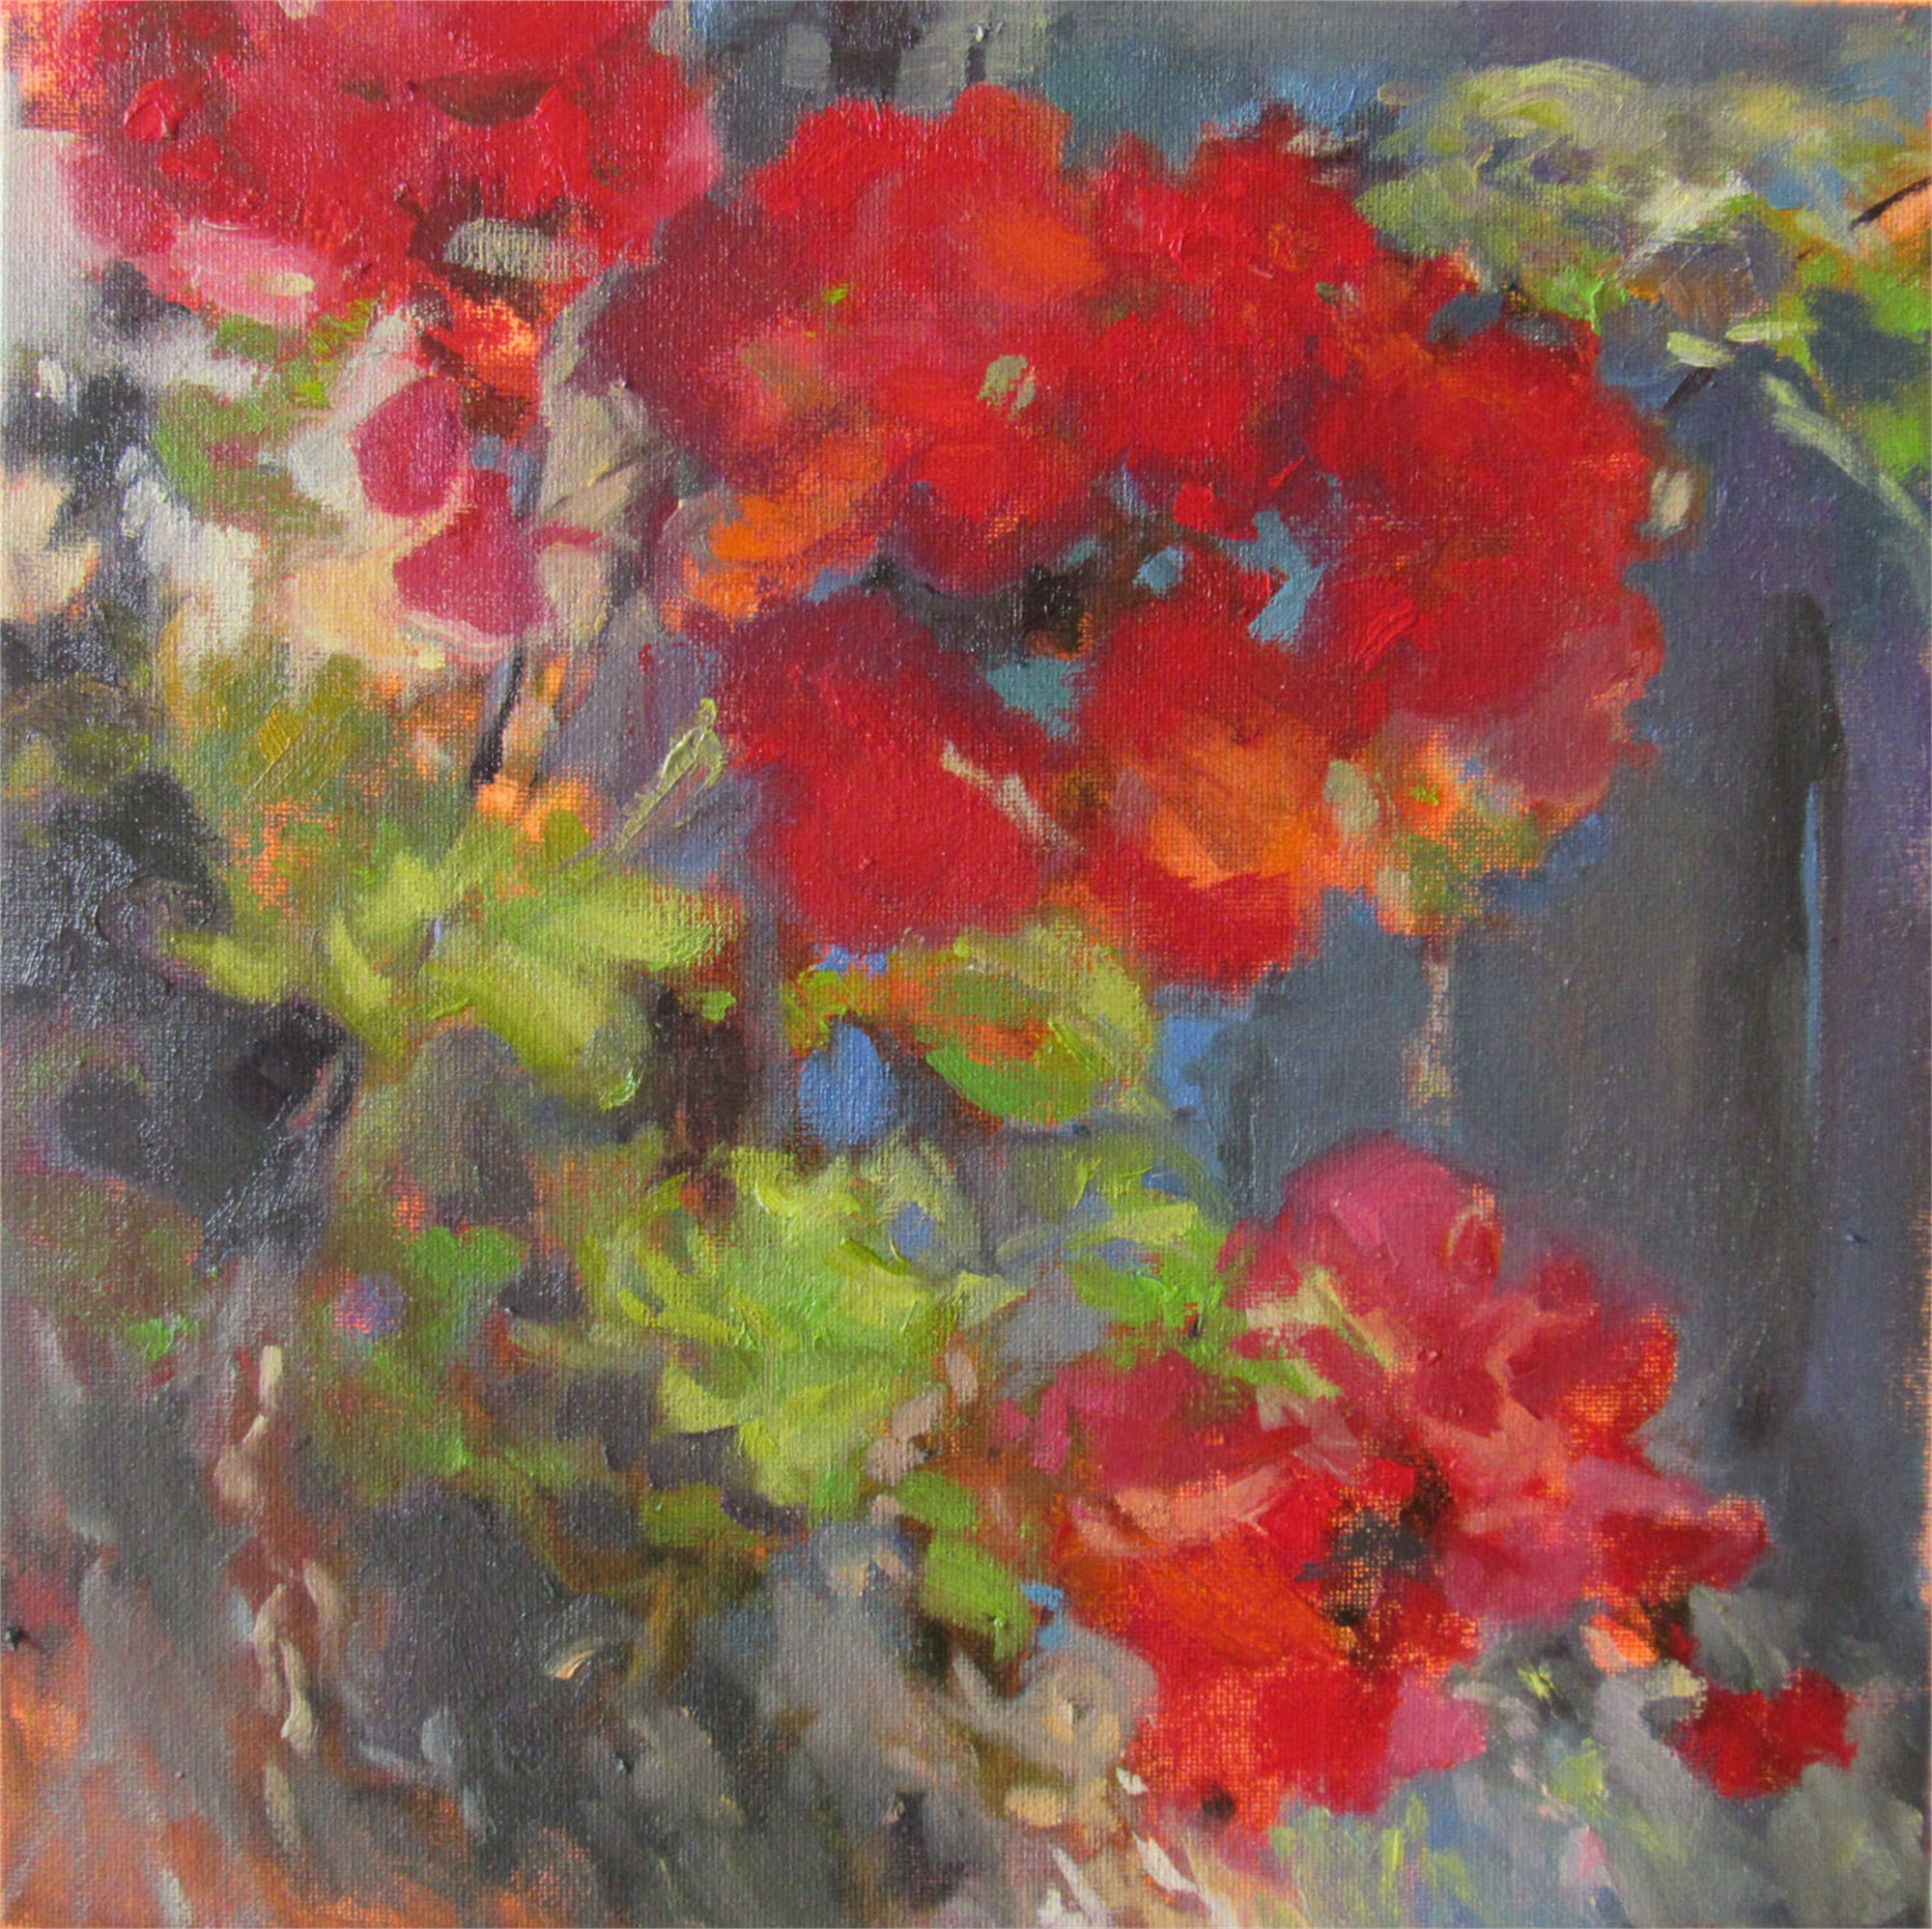 Meeting Street Geraniums by Madeline Dukes